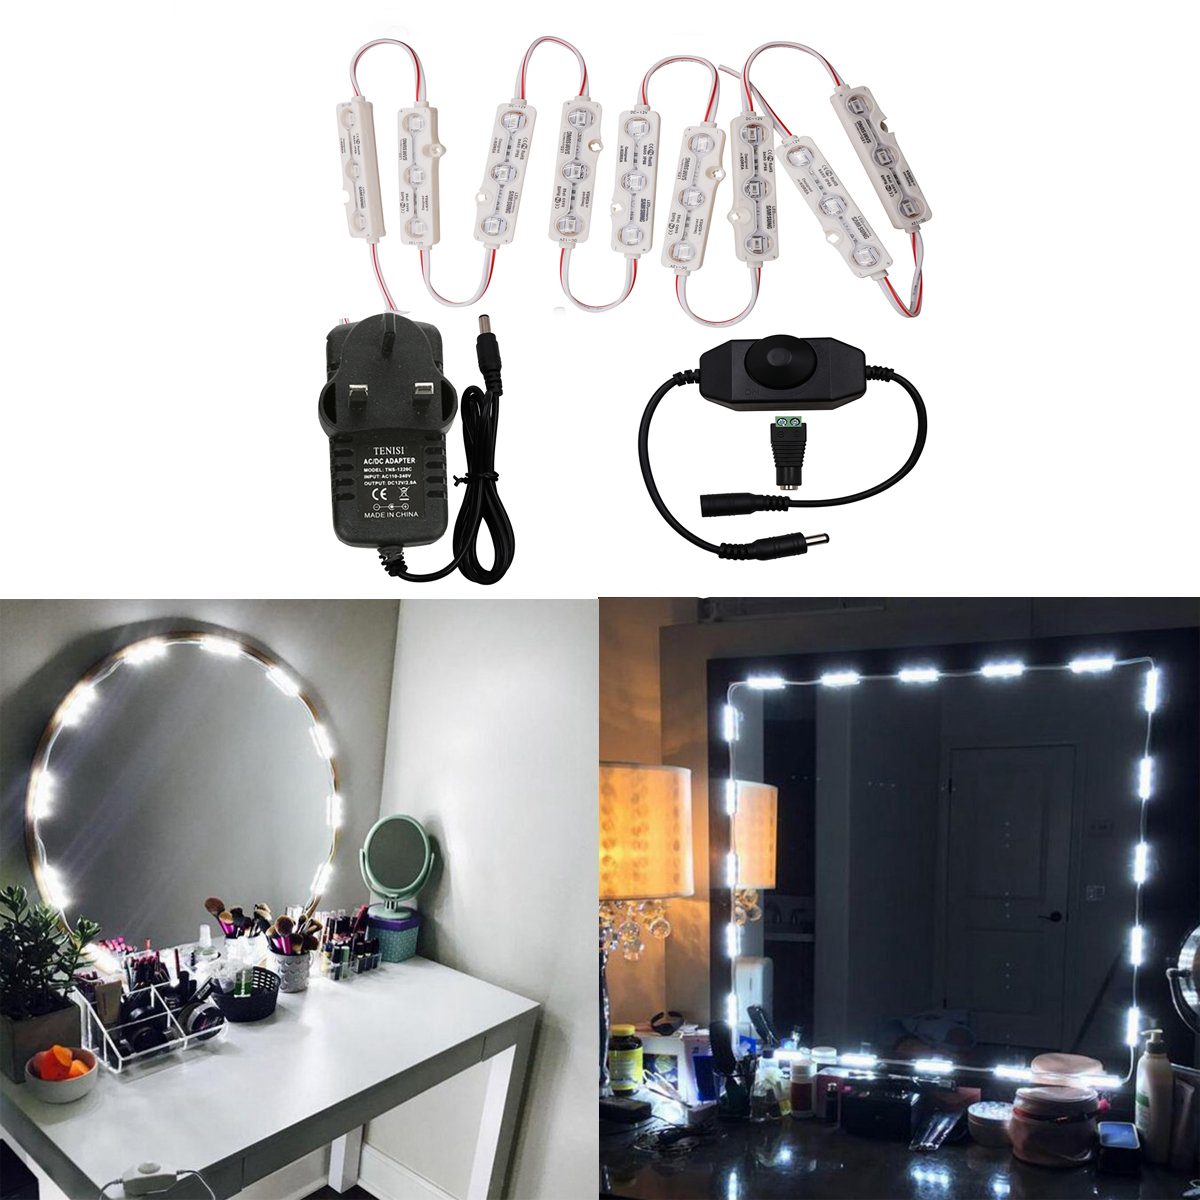 Led Lighting Aspiring New Hollywood Style Led Vanity Mirror Lights Kit Dimmable Bulbs And Power Plug,lighting Fixture Strip For Makeup Vanity Table For Improving Blood Circulation